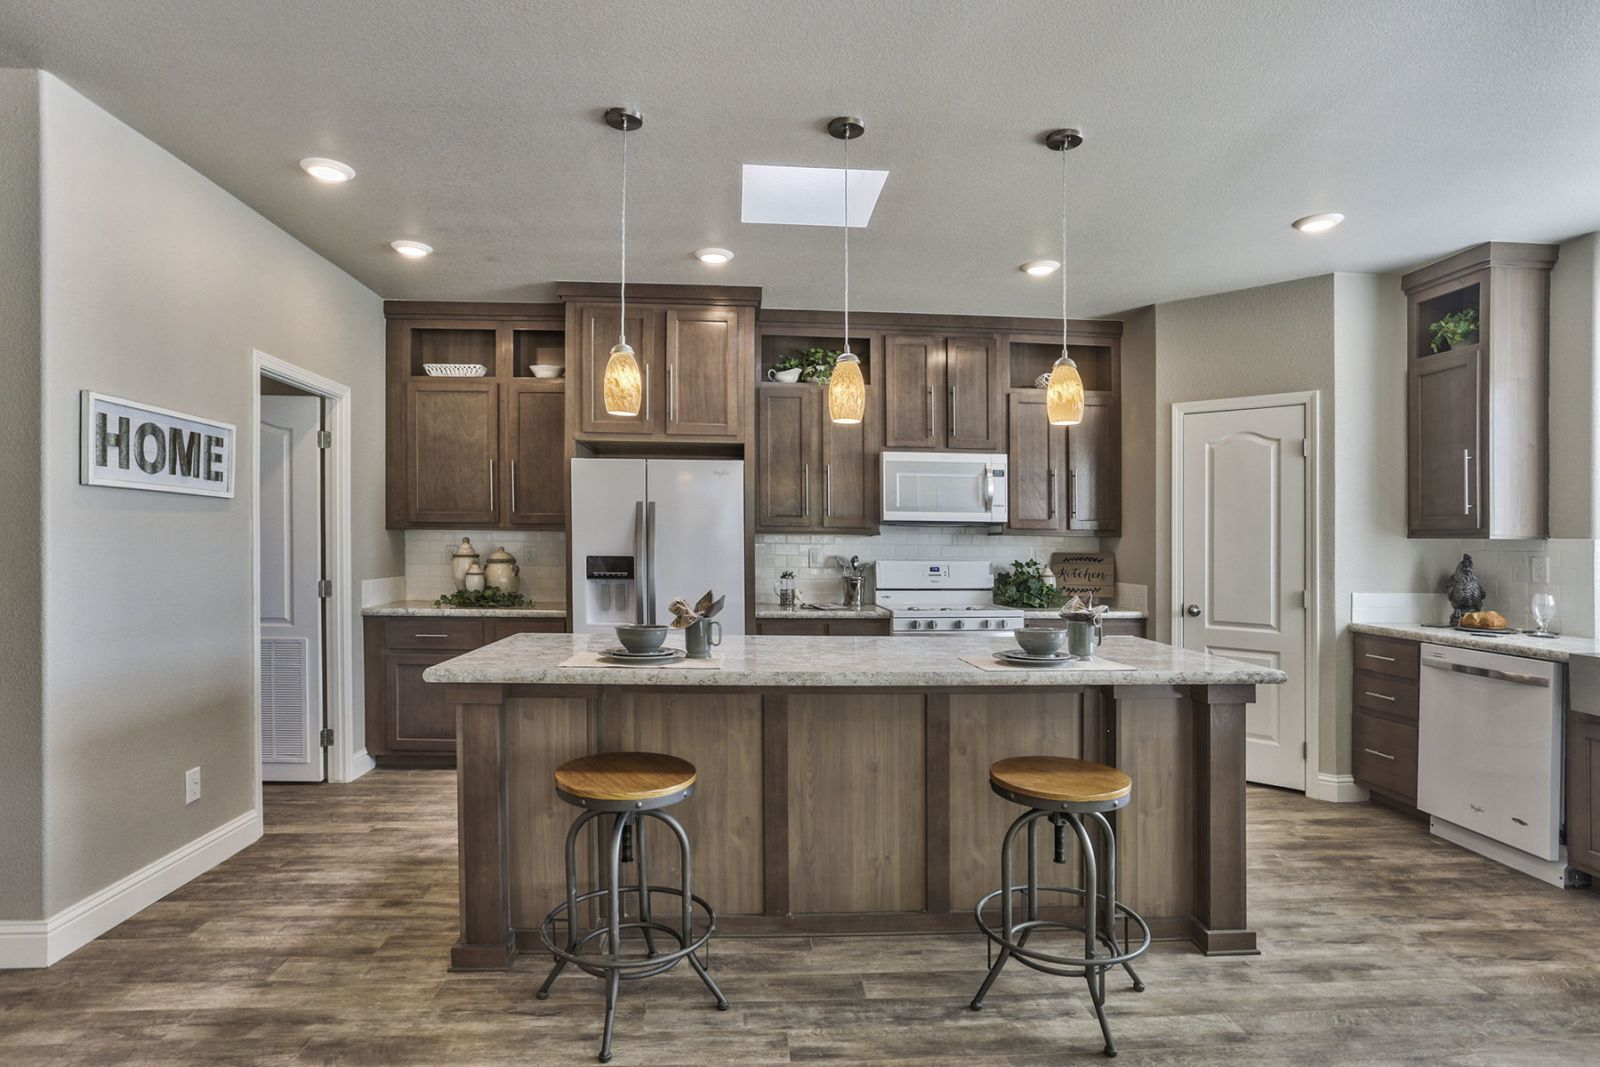 New Homes - an Factory Direct on small banks in texas, small hospitals in texas, small rural towns in texas, small farms in texas, small churches in texas, used mobile home sale texas, small apartments in texas, small mobile homes in indiana,